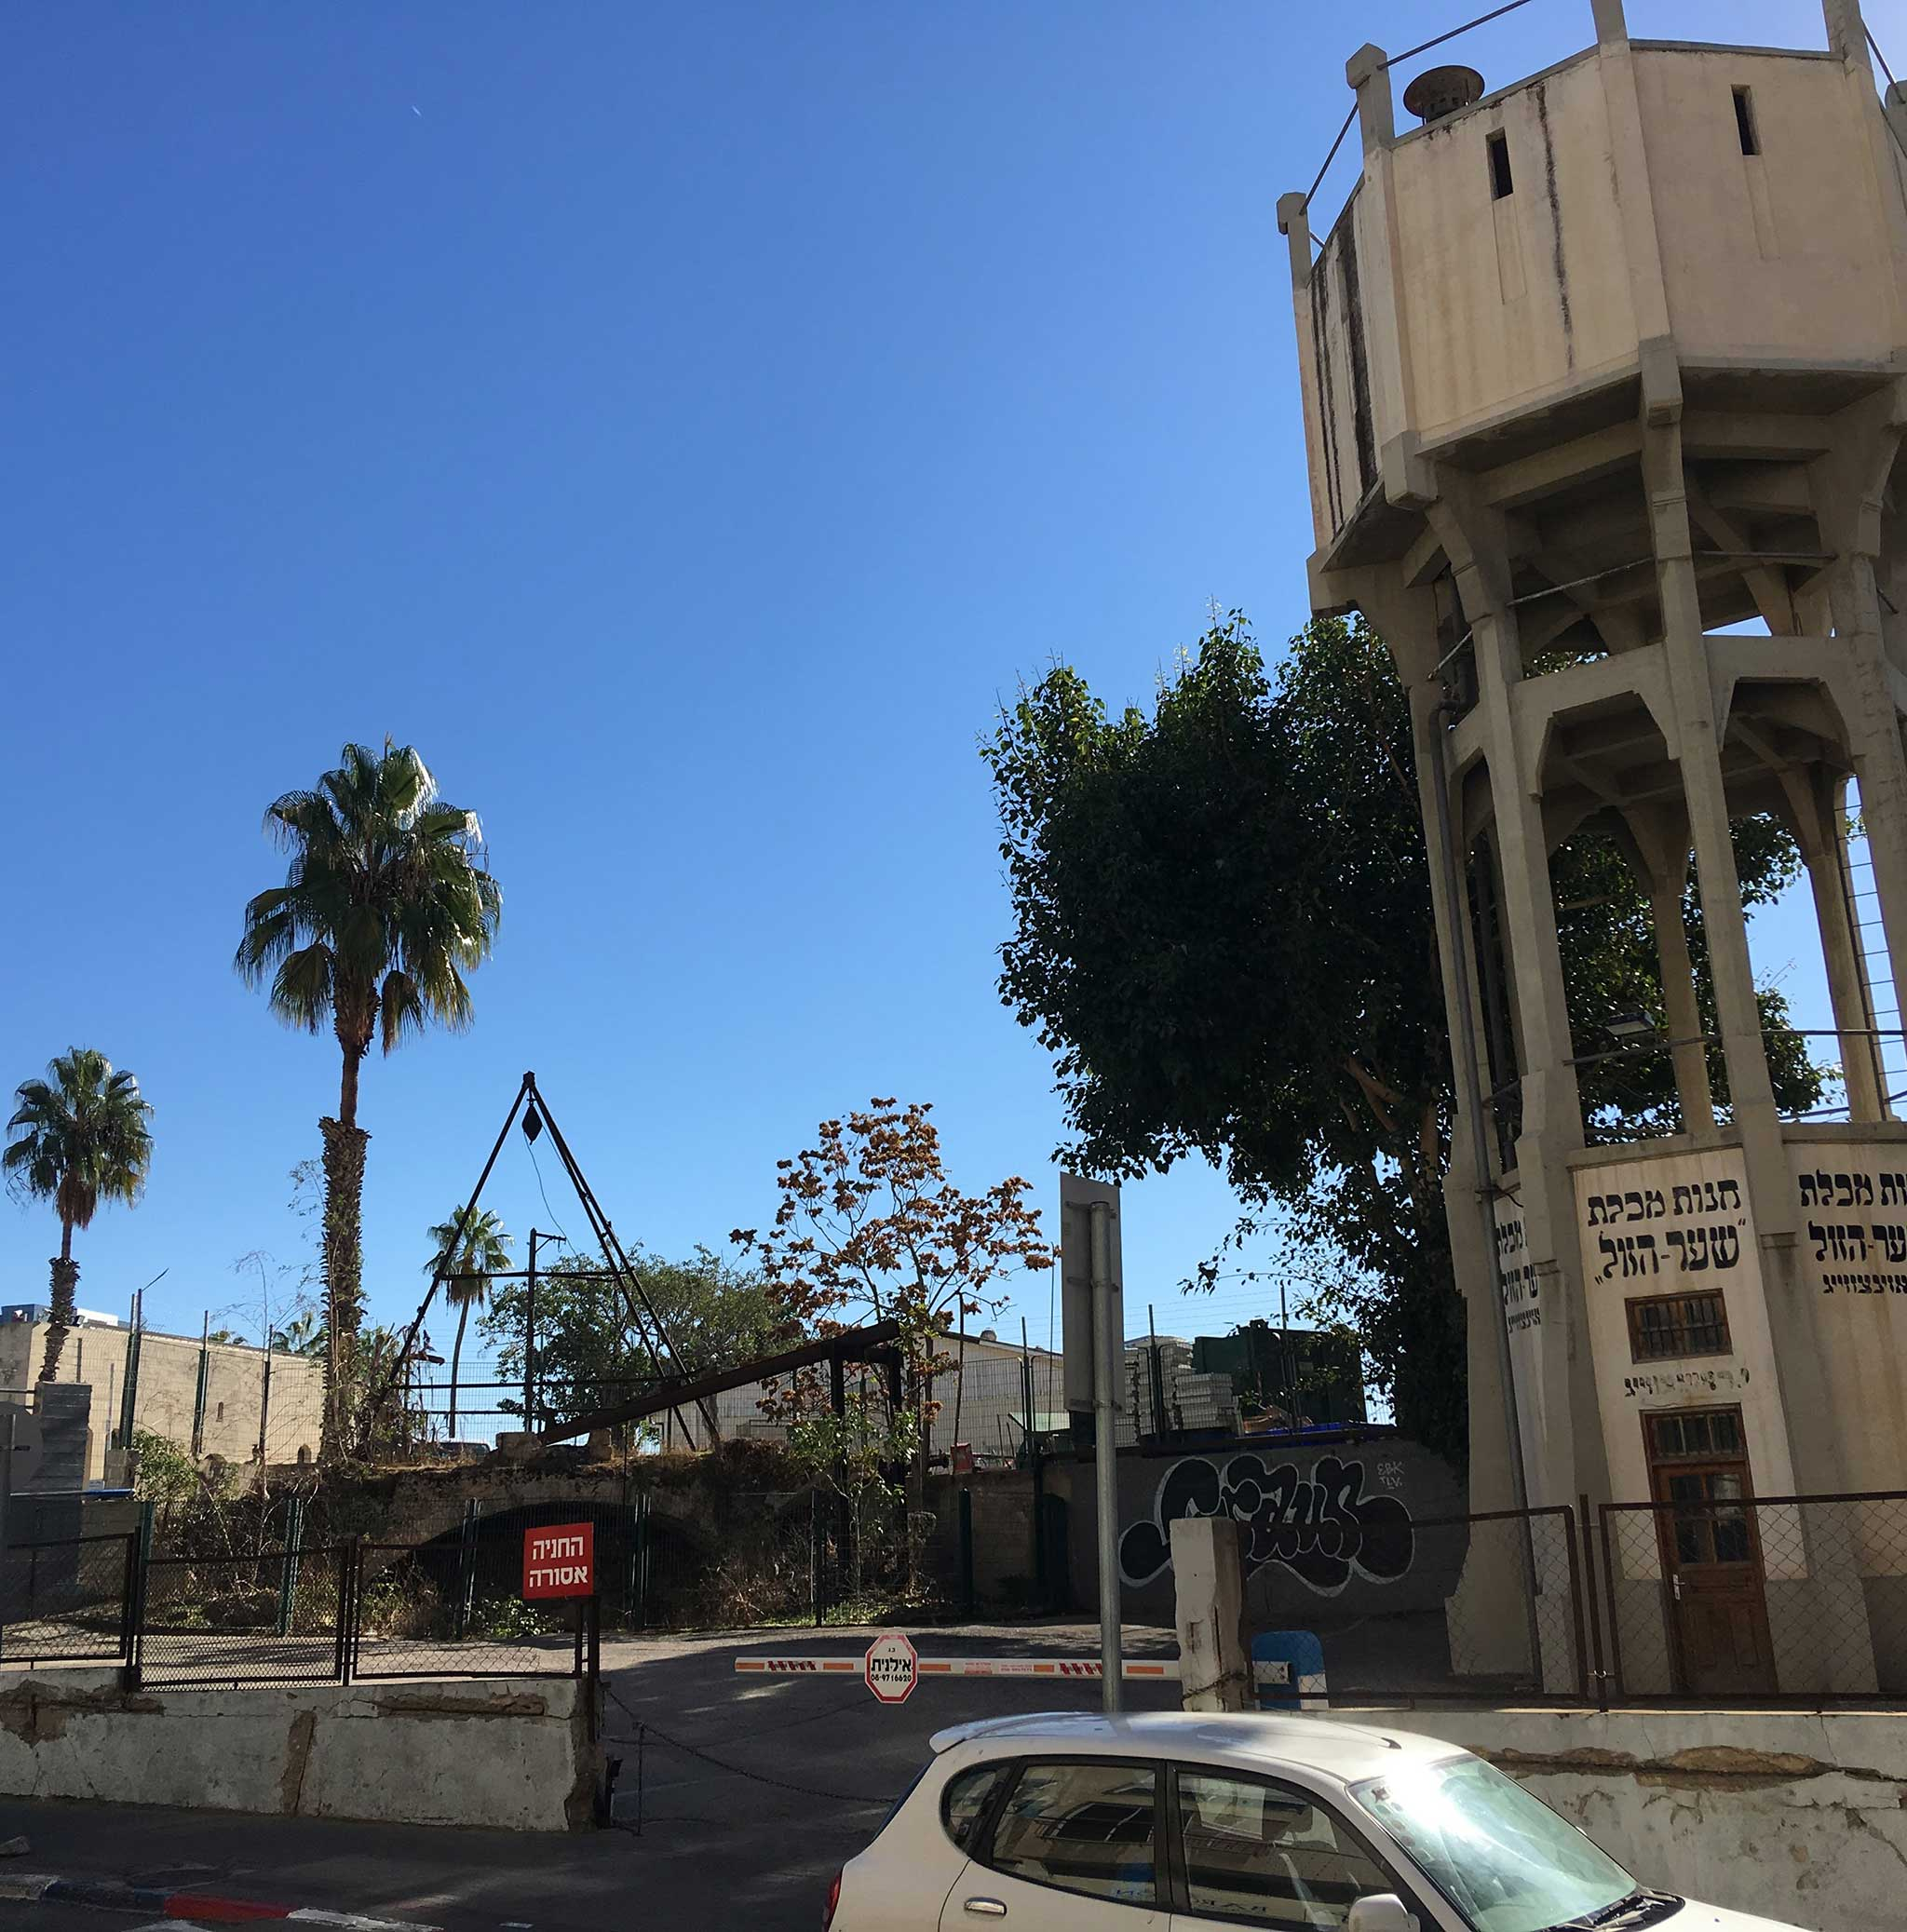 Water Tower on Tel Aviv audio tour The Electrifying Story of Gan HaHashmal and Its Architecture